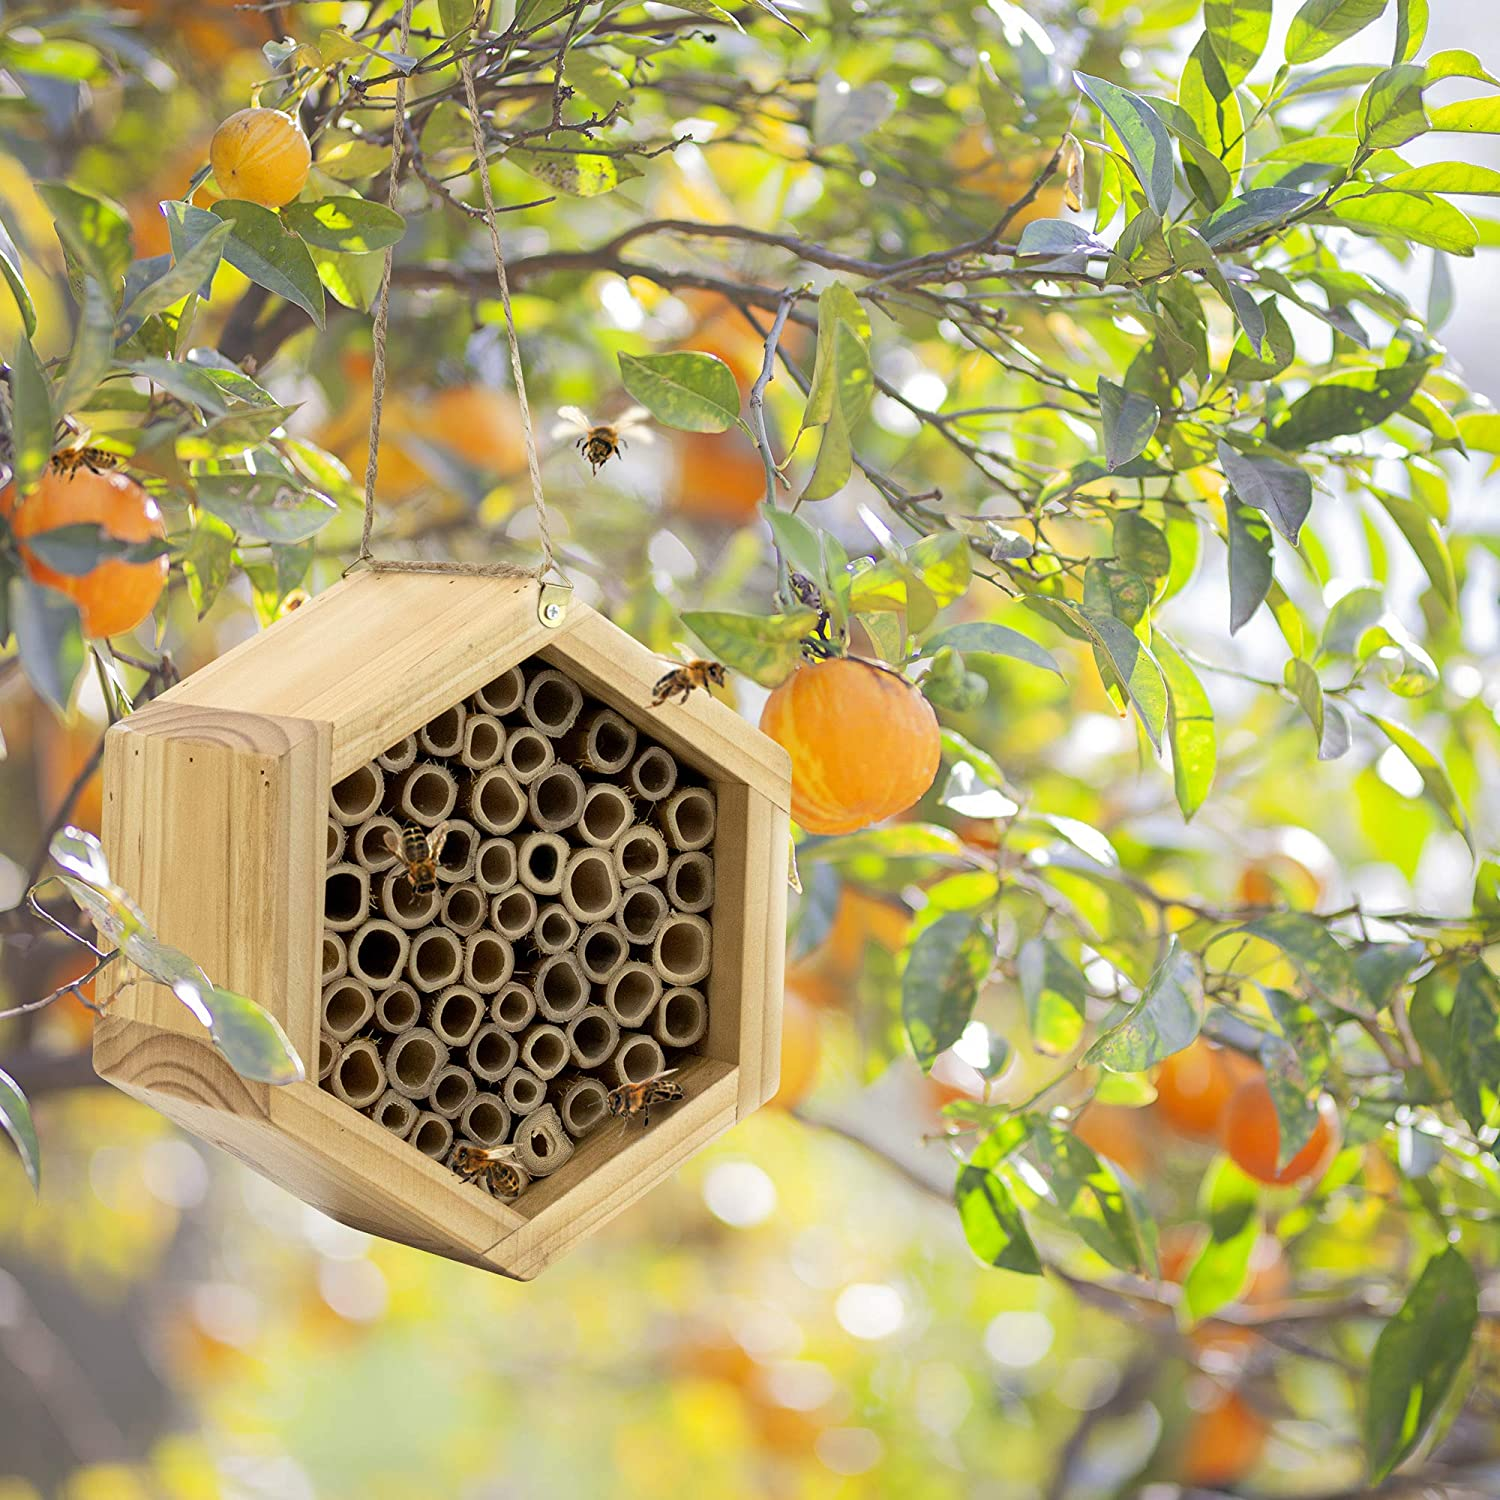 Help One of Your Favorite Pollinators Flourish with an Adorable Bee House